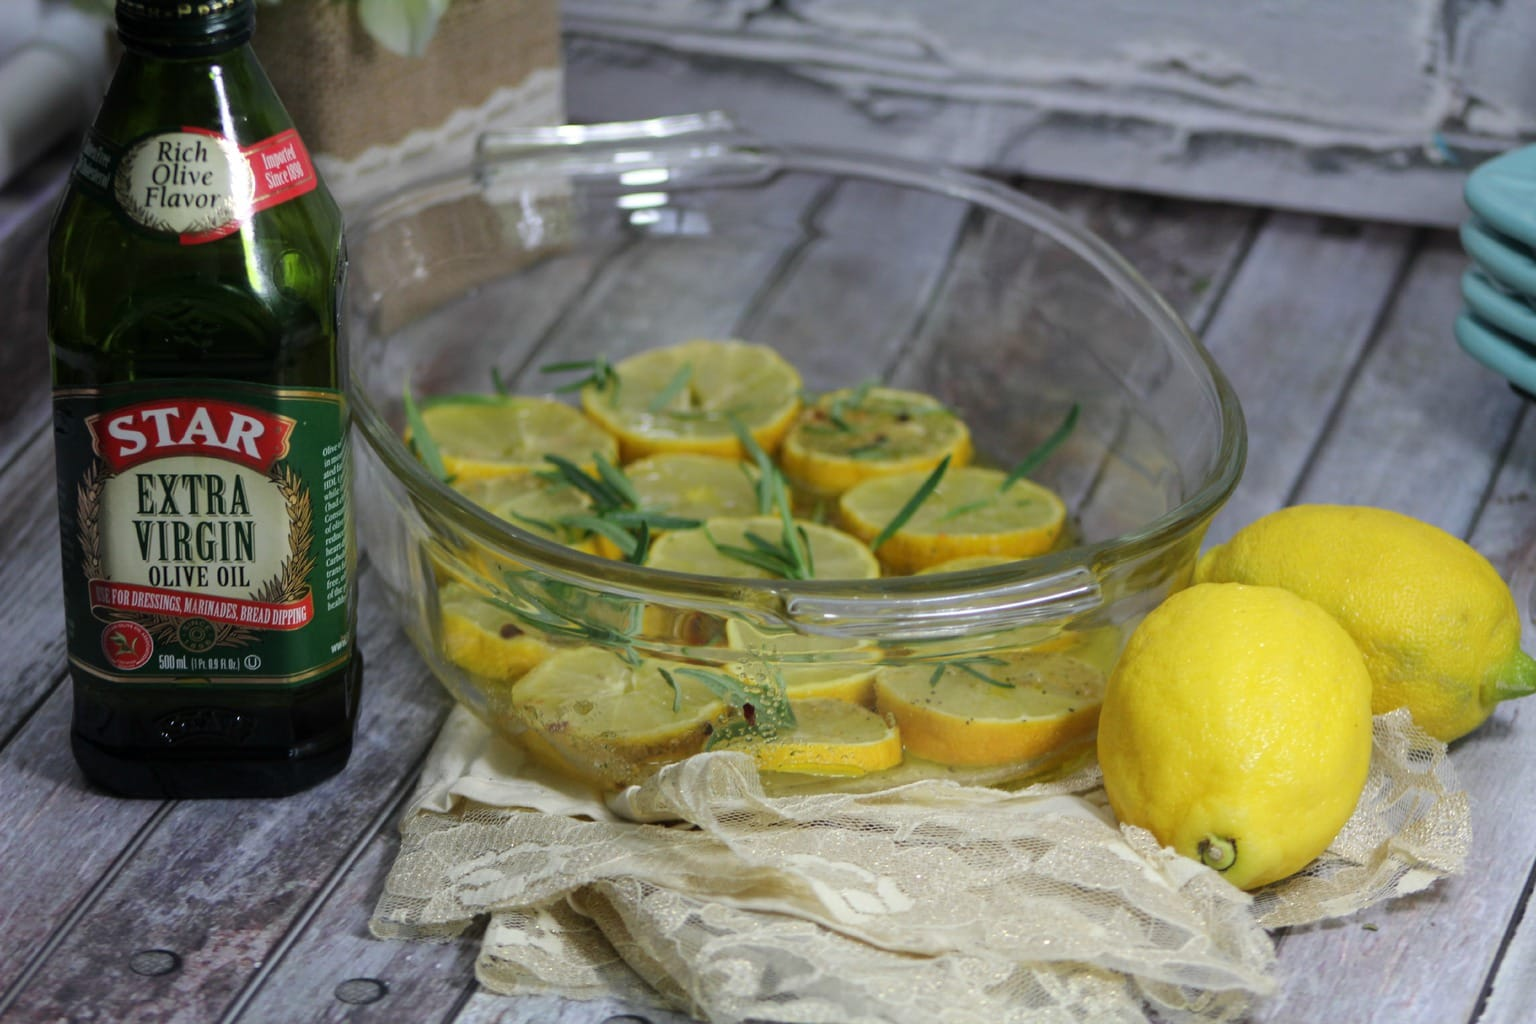 Lemons with rosemary and seasoning in a glass bowl with lemons and olive oil on side.